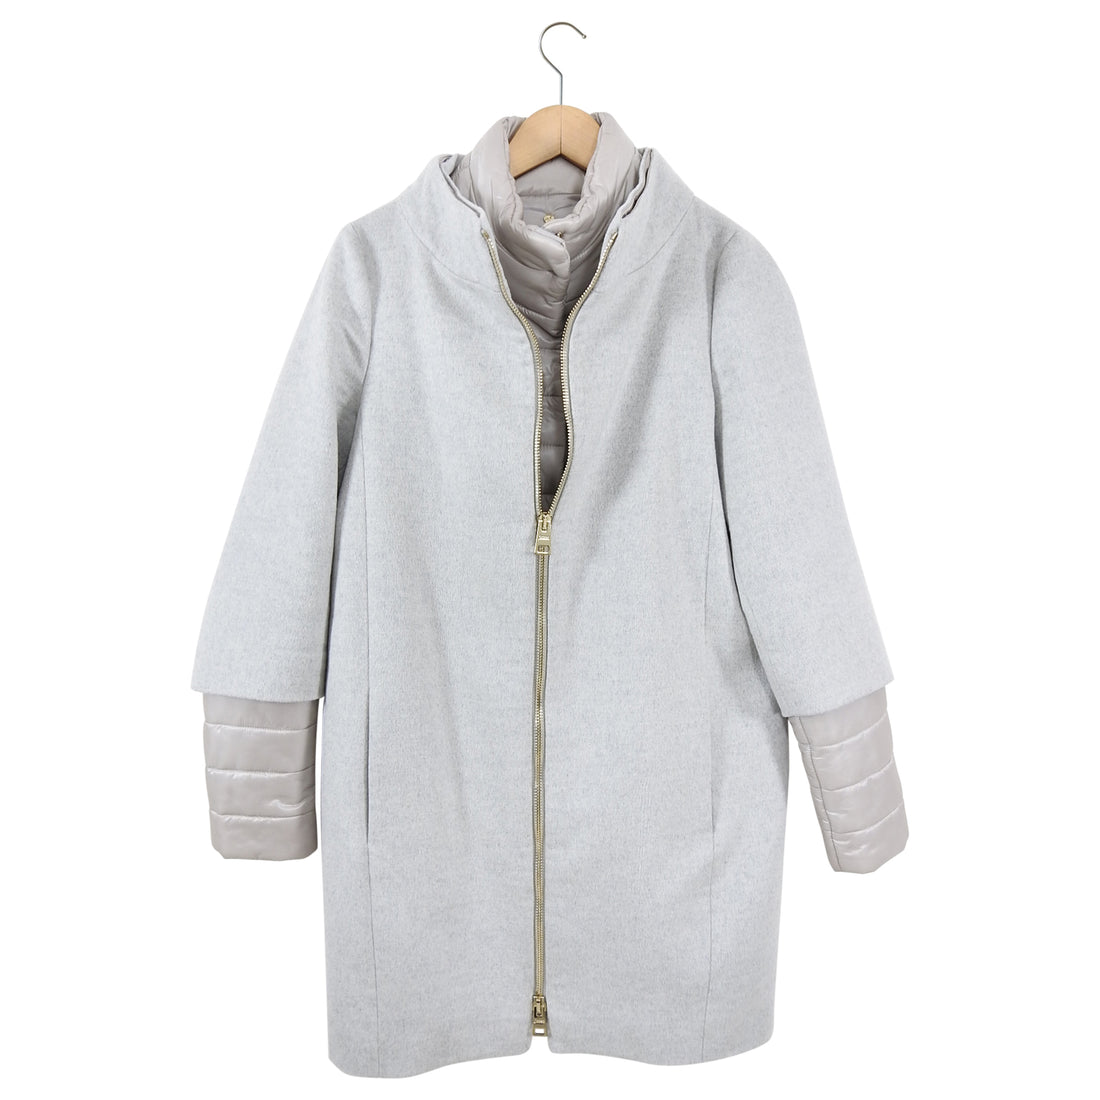 Herno 2 in 1 Cashmere Puffer Cocoon Coat - IT42 / 6